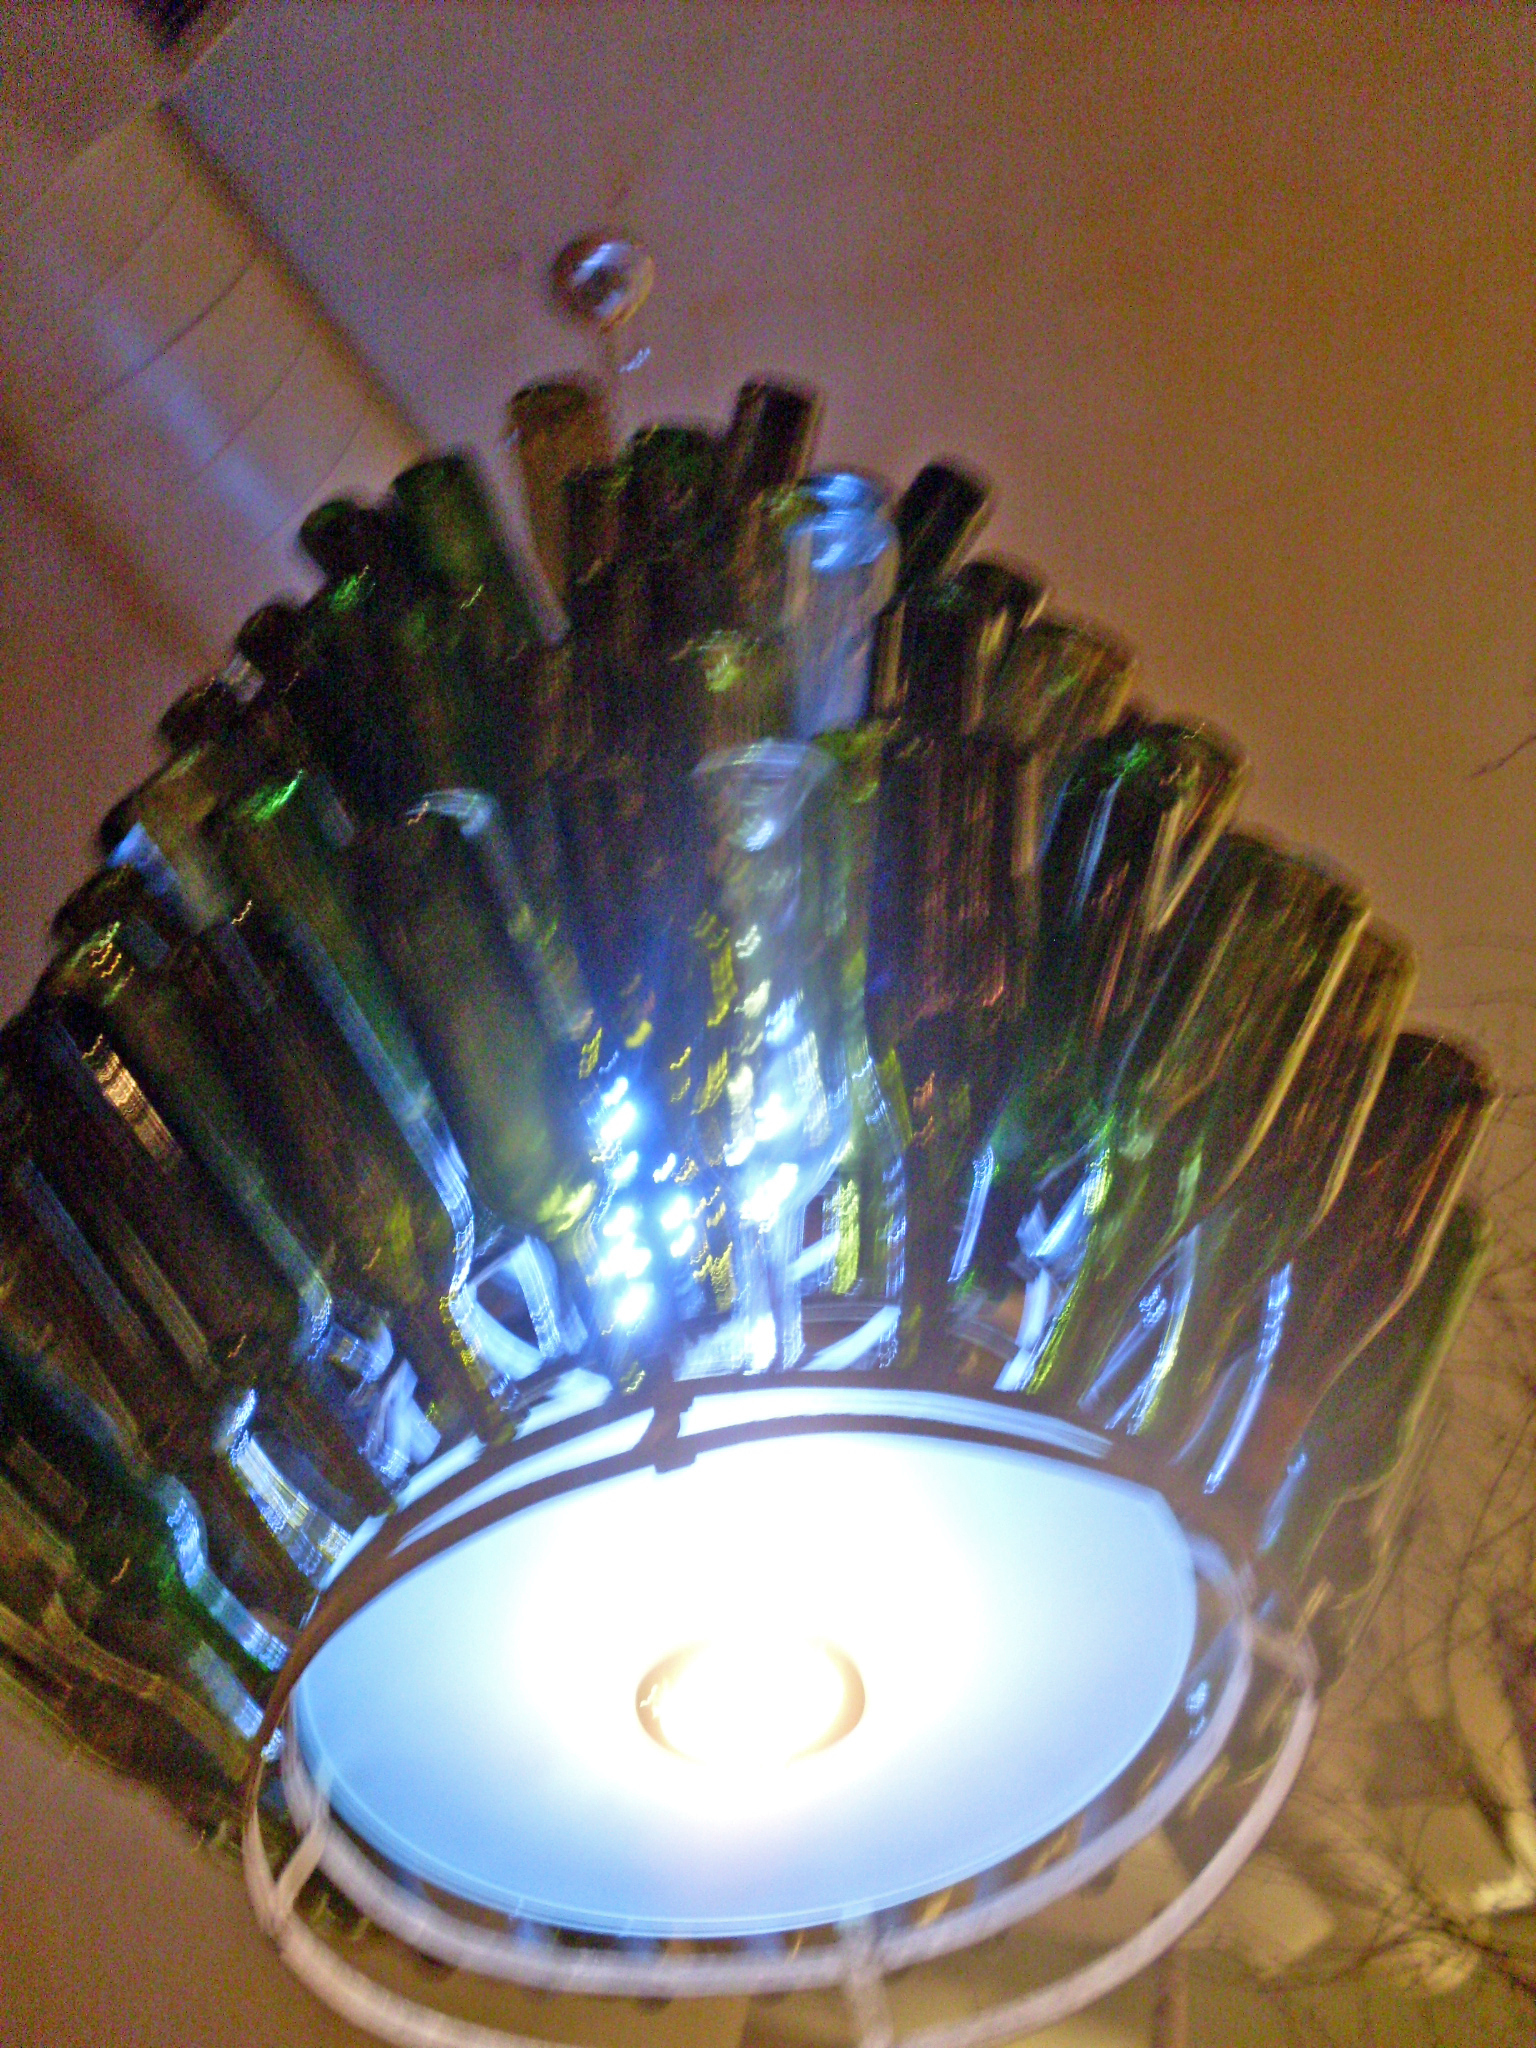 The chandelier over our table, made from antique wine bottles.